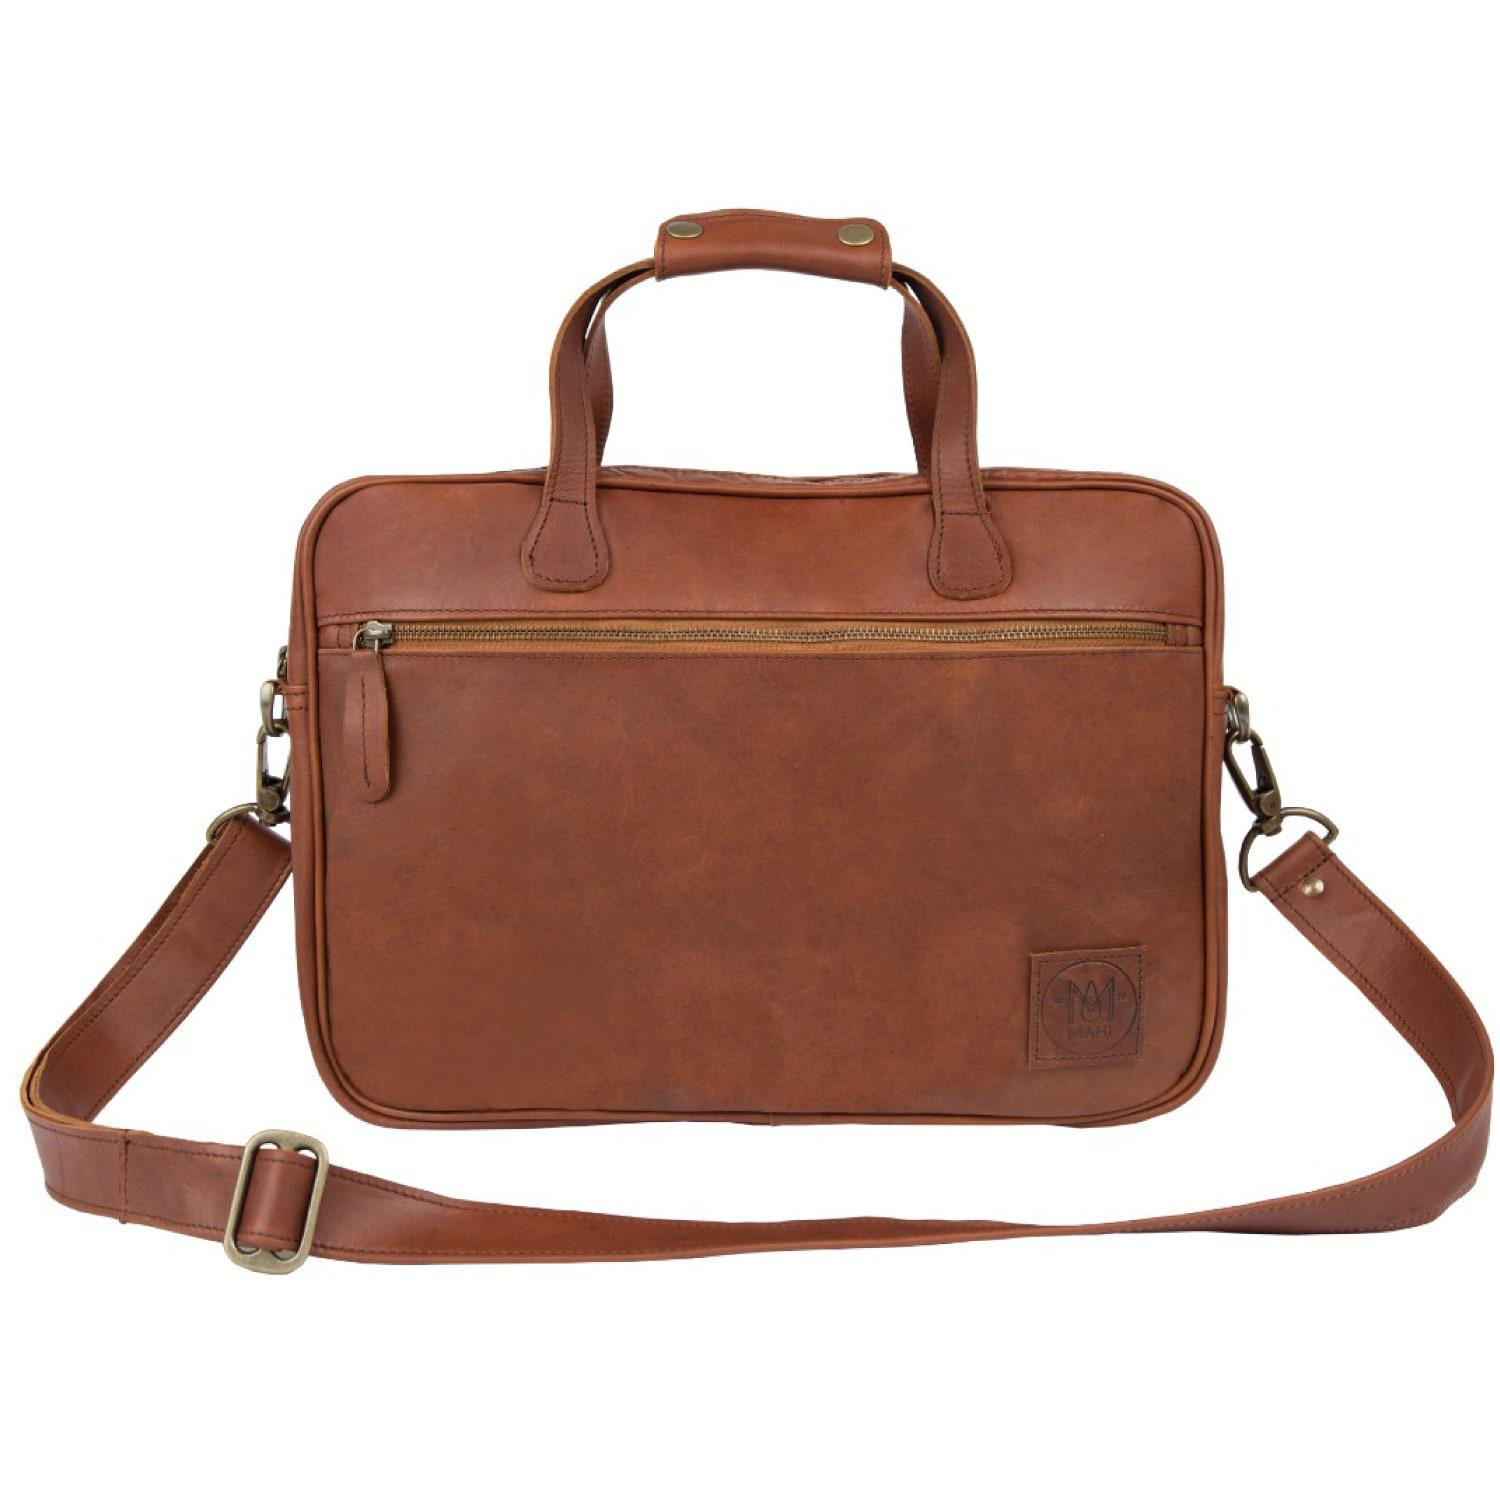 Mahi Leather Compact Satchel Bag In Vintage Brown Tas Tumi Alpha 2 Hanging Travel Kit Mens